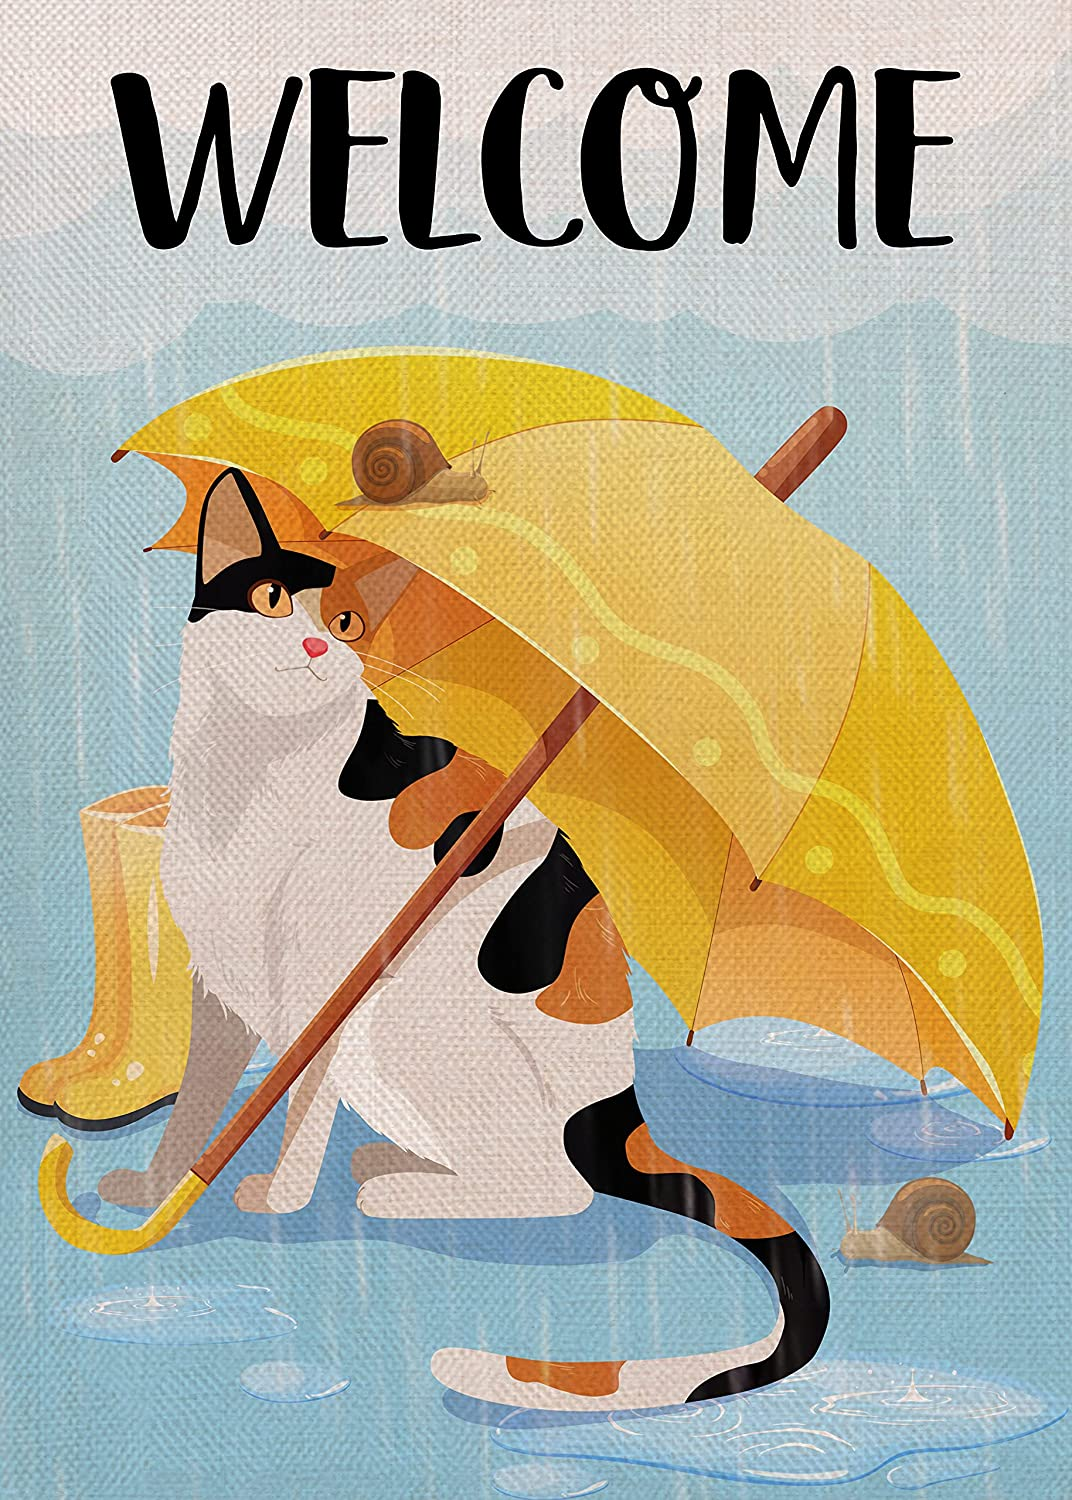 Furiaz Welcome Cat Yellow Umbrella Small Decorative Garden Flag, Funny Kitty House Yard Lawn Rain Boots Snails Home Outside Decoration, Fall Winter Farmhouse Outdoor Burlap Decor Double Sided 12 x 18